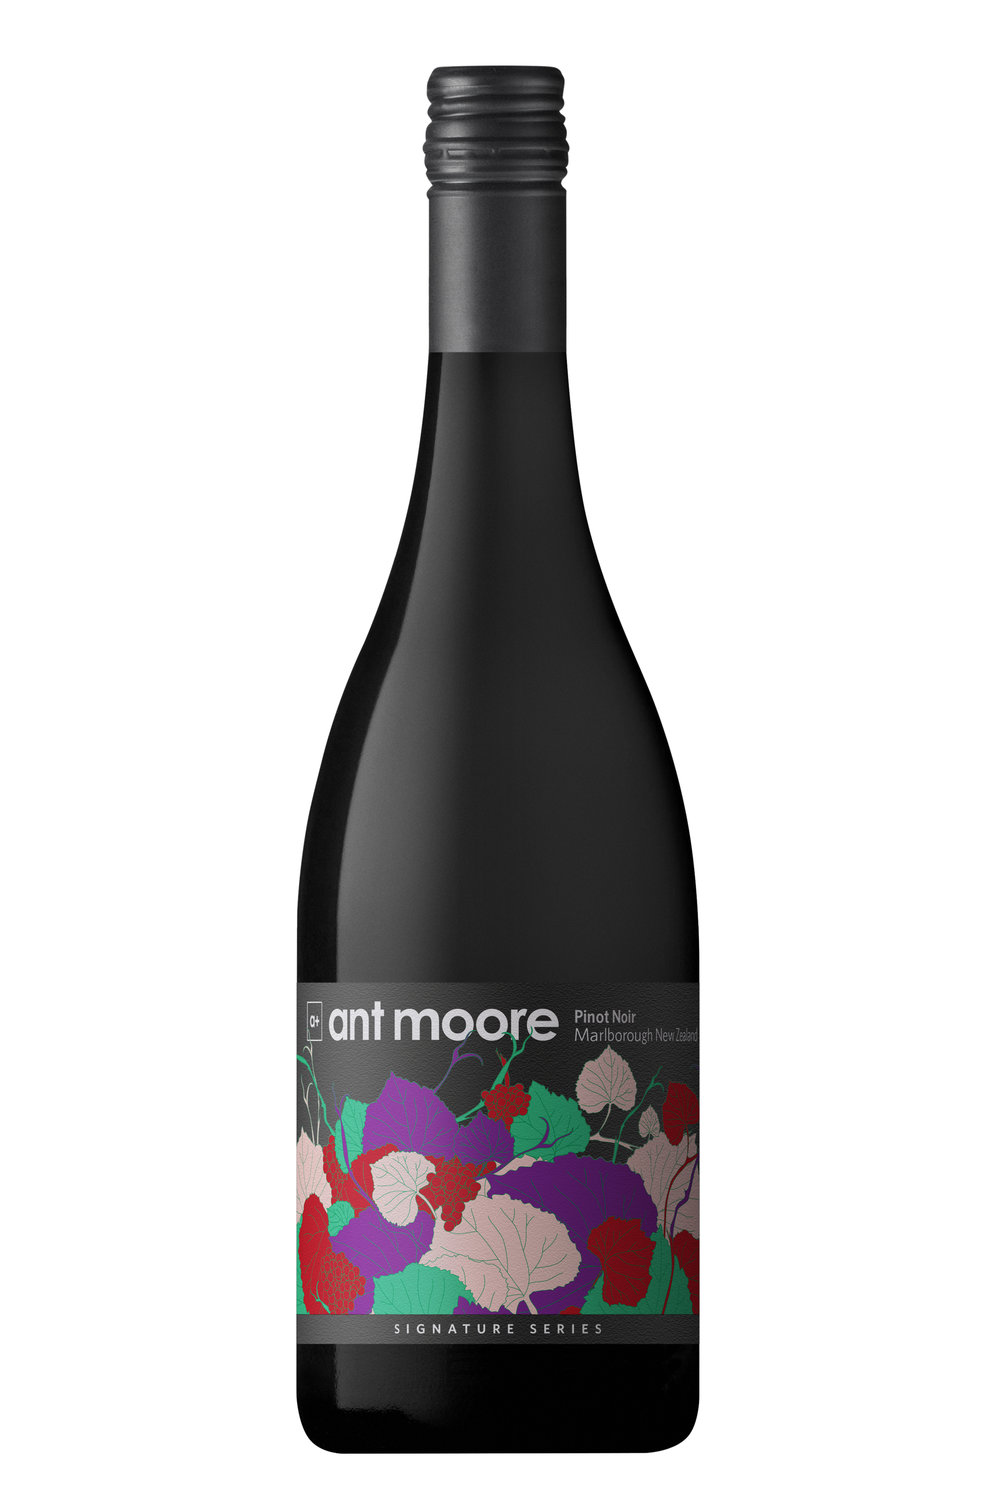 Ant Moore Signature Series Pinot Noir 2017 - Blackberry, plum, pepper, liquorice and leather are great descriptors for this wine. Subtle oak and full tannin structure gives roundness which lingers on the palate.